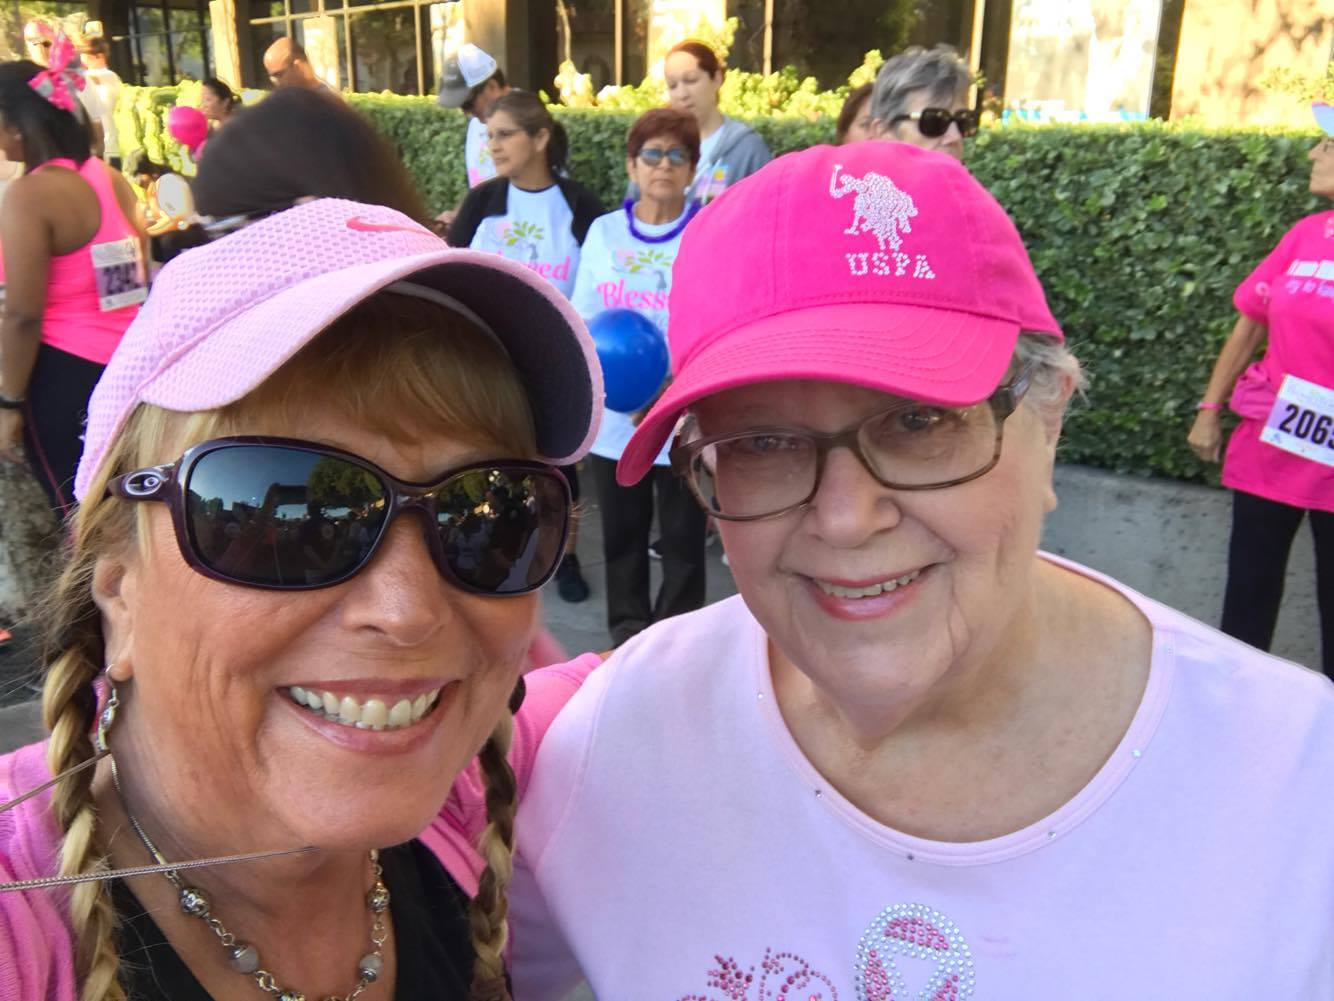 My mother in law and cousin, at the Believe Walk 2016.